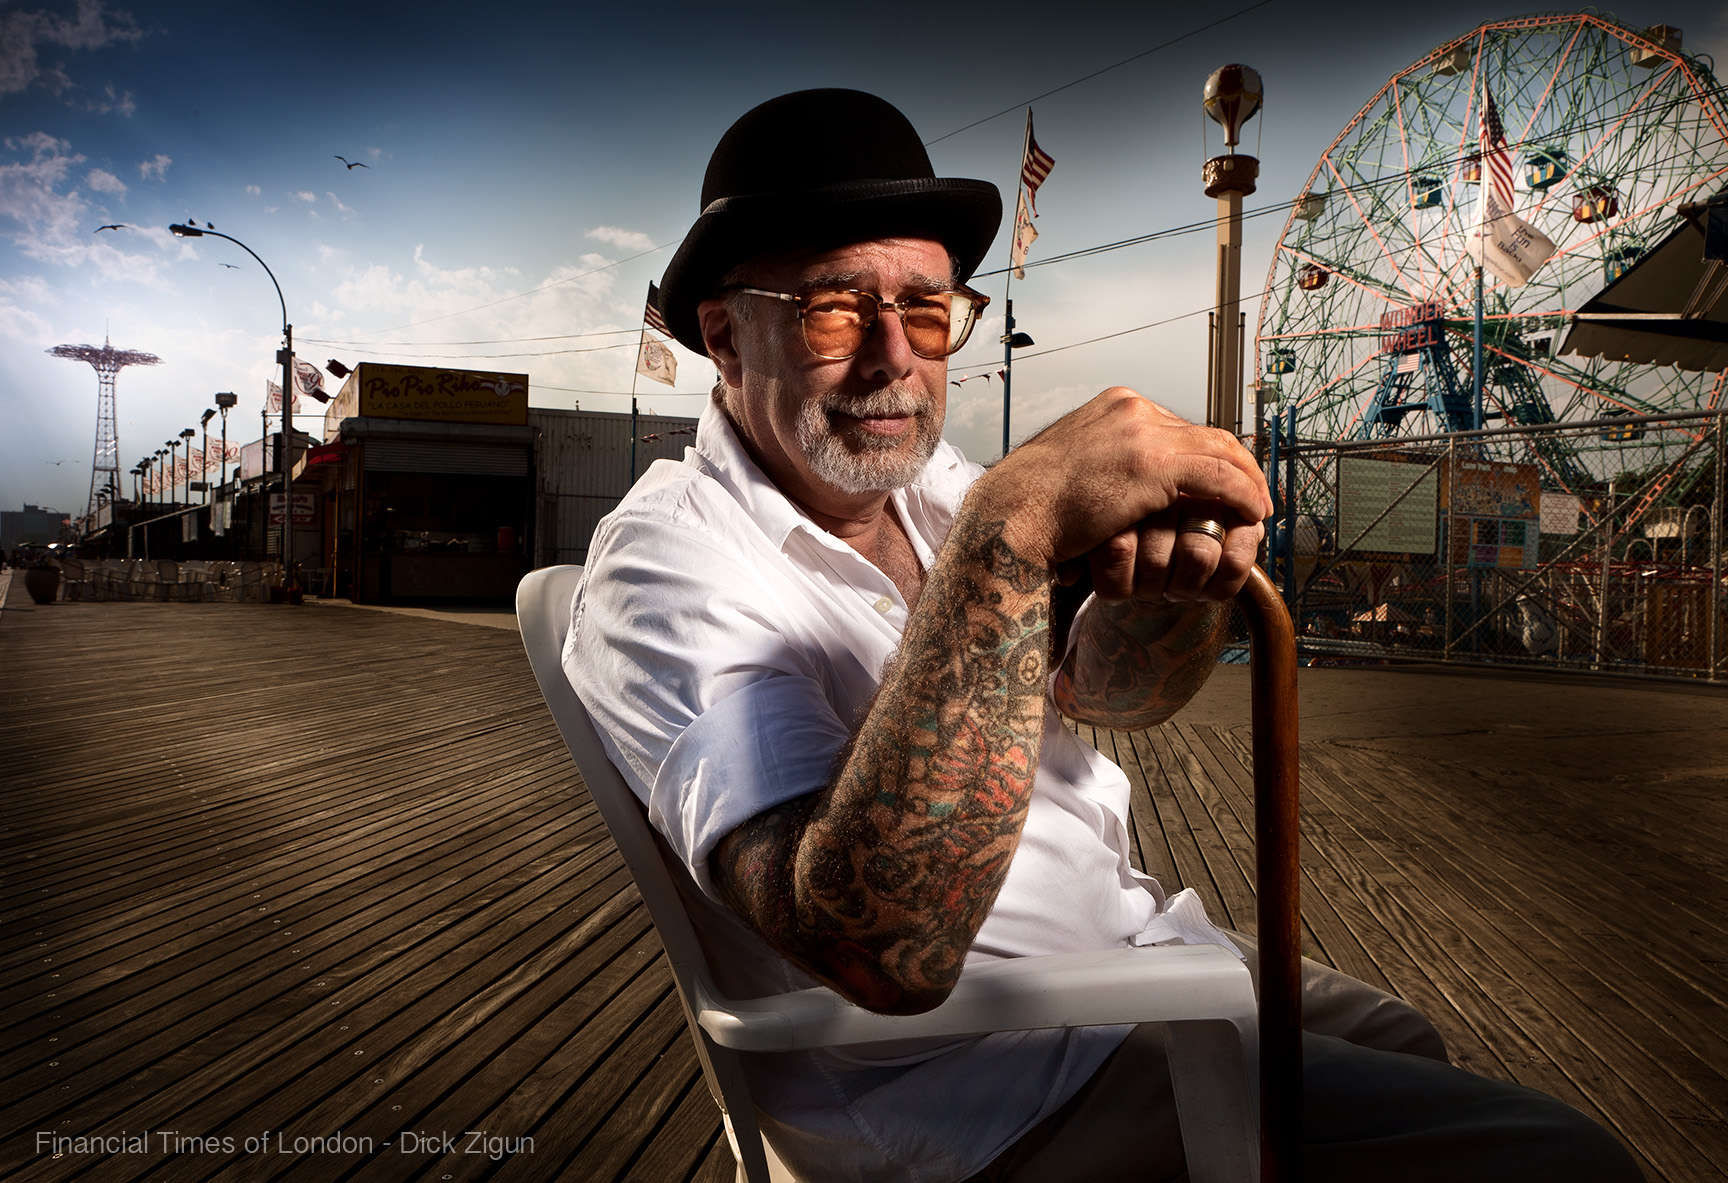 Dick Zigun founder of the Mermaid Parade Coney Island Brooklyn Forbes magazine : Portraits-Keywording : NY - Portrait Photographer Video, Architectural, Corporate Editorial Location Photography